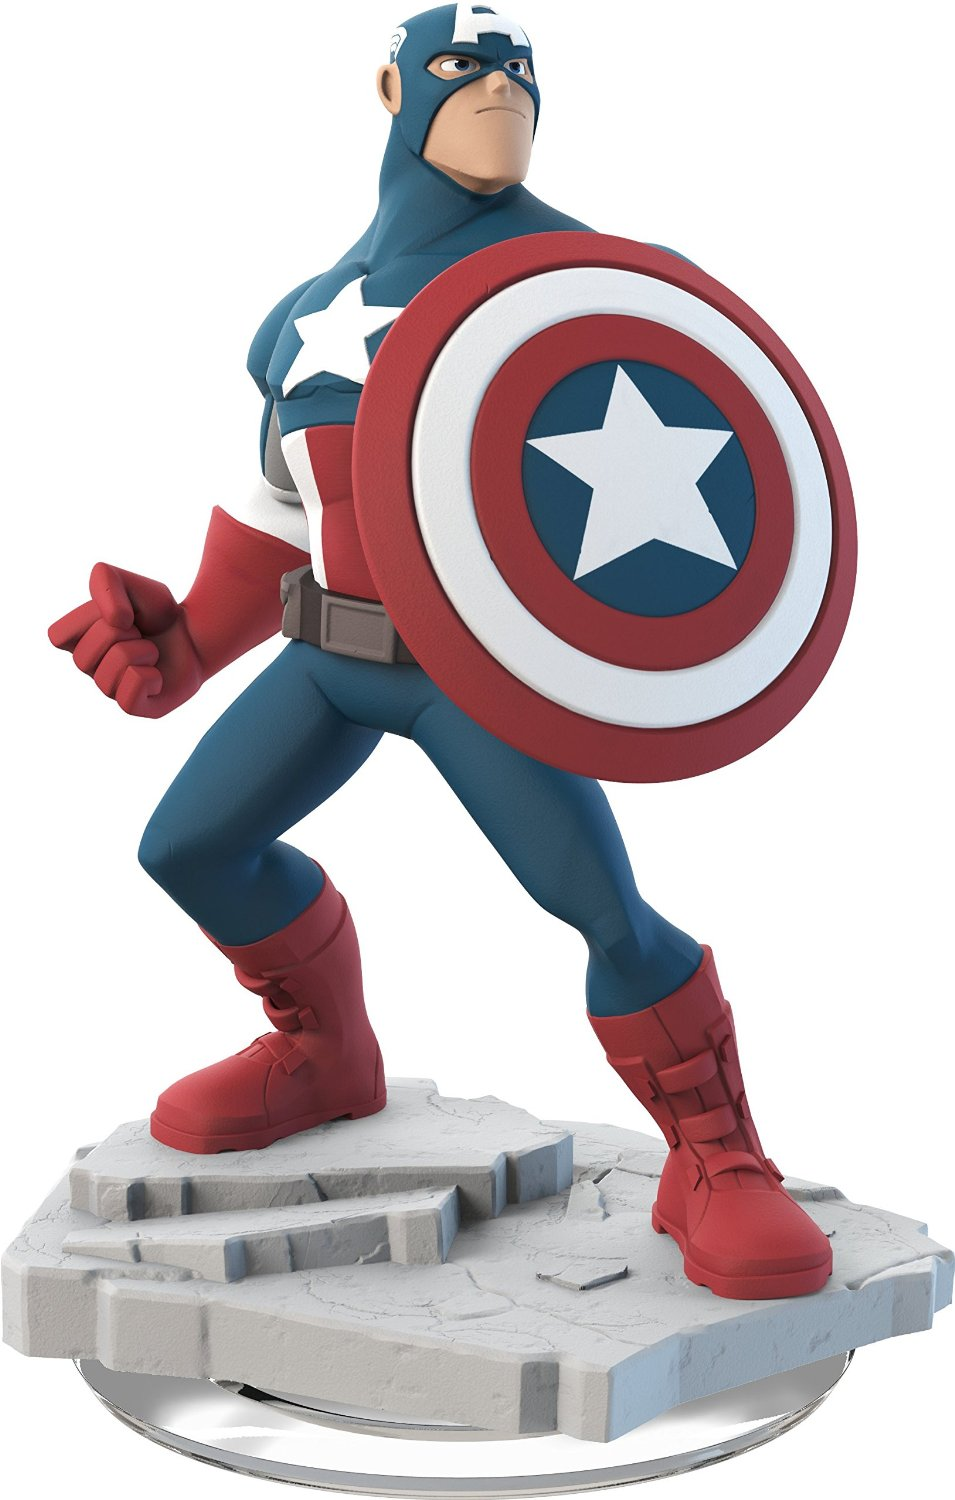 disney infinity meets marvel 39 s avengers and spider man. Black Bedroom Furniture Sets. Home Design Ideas